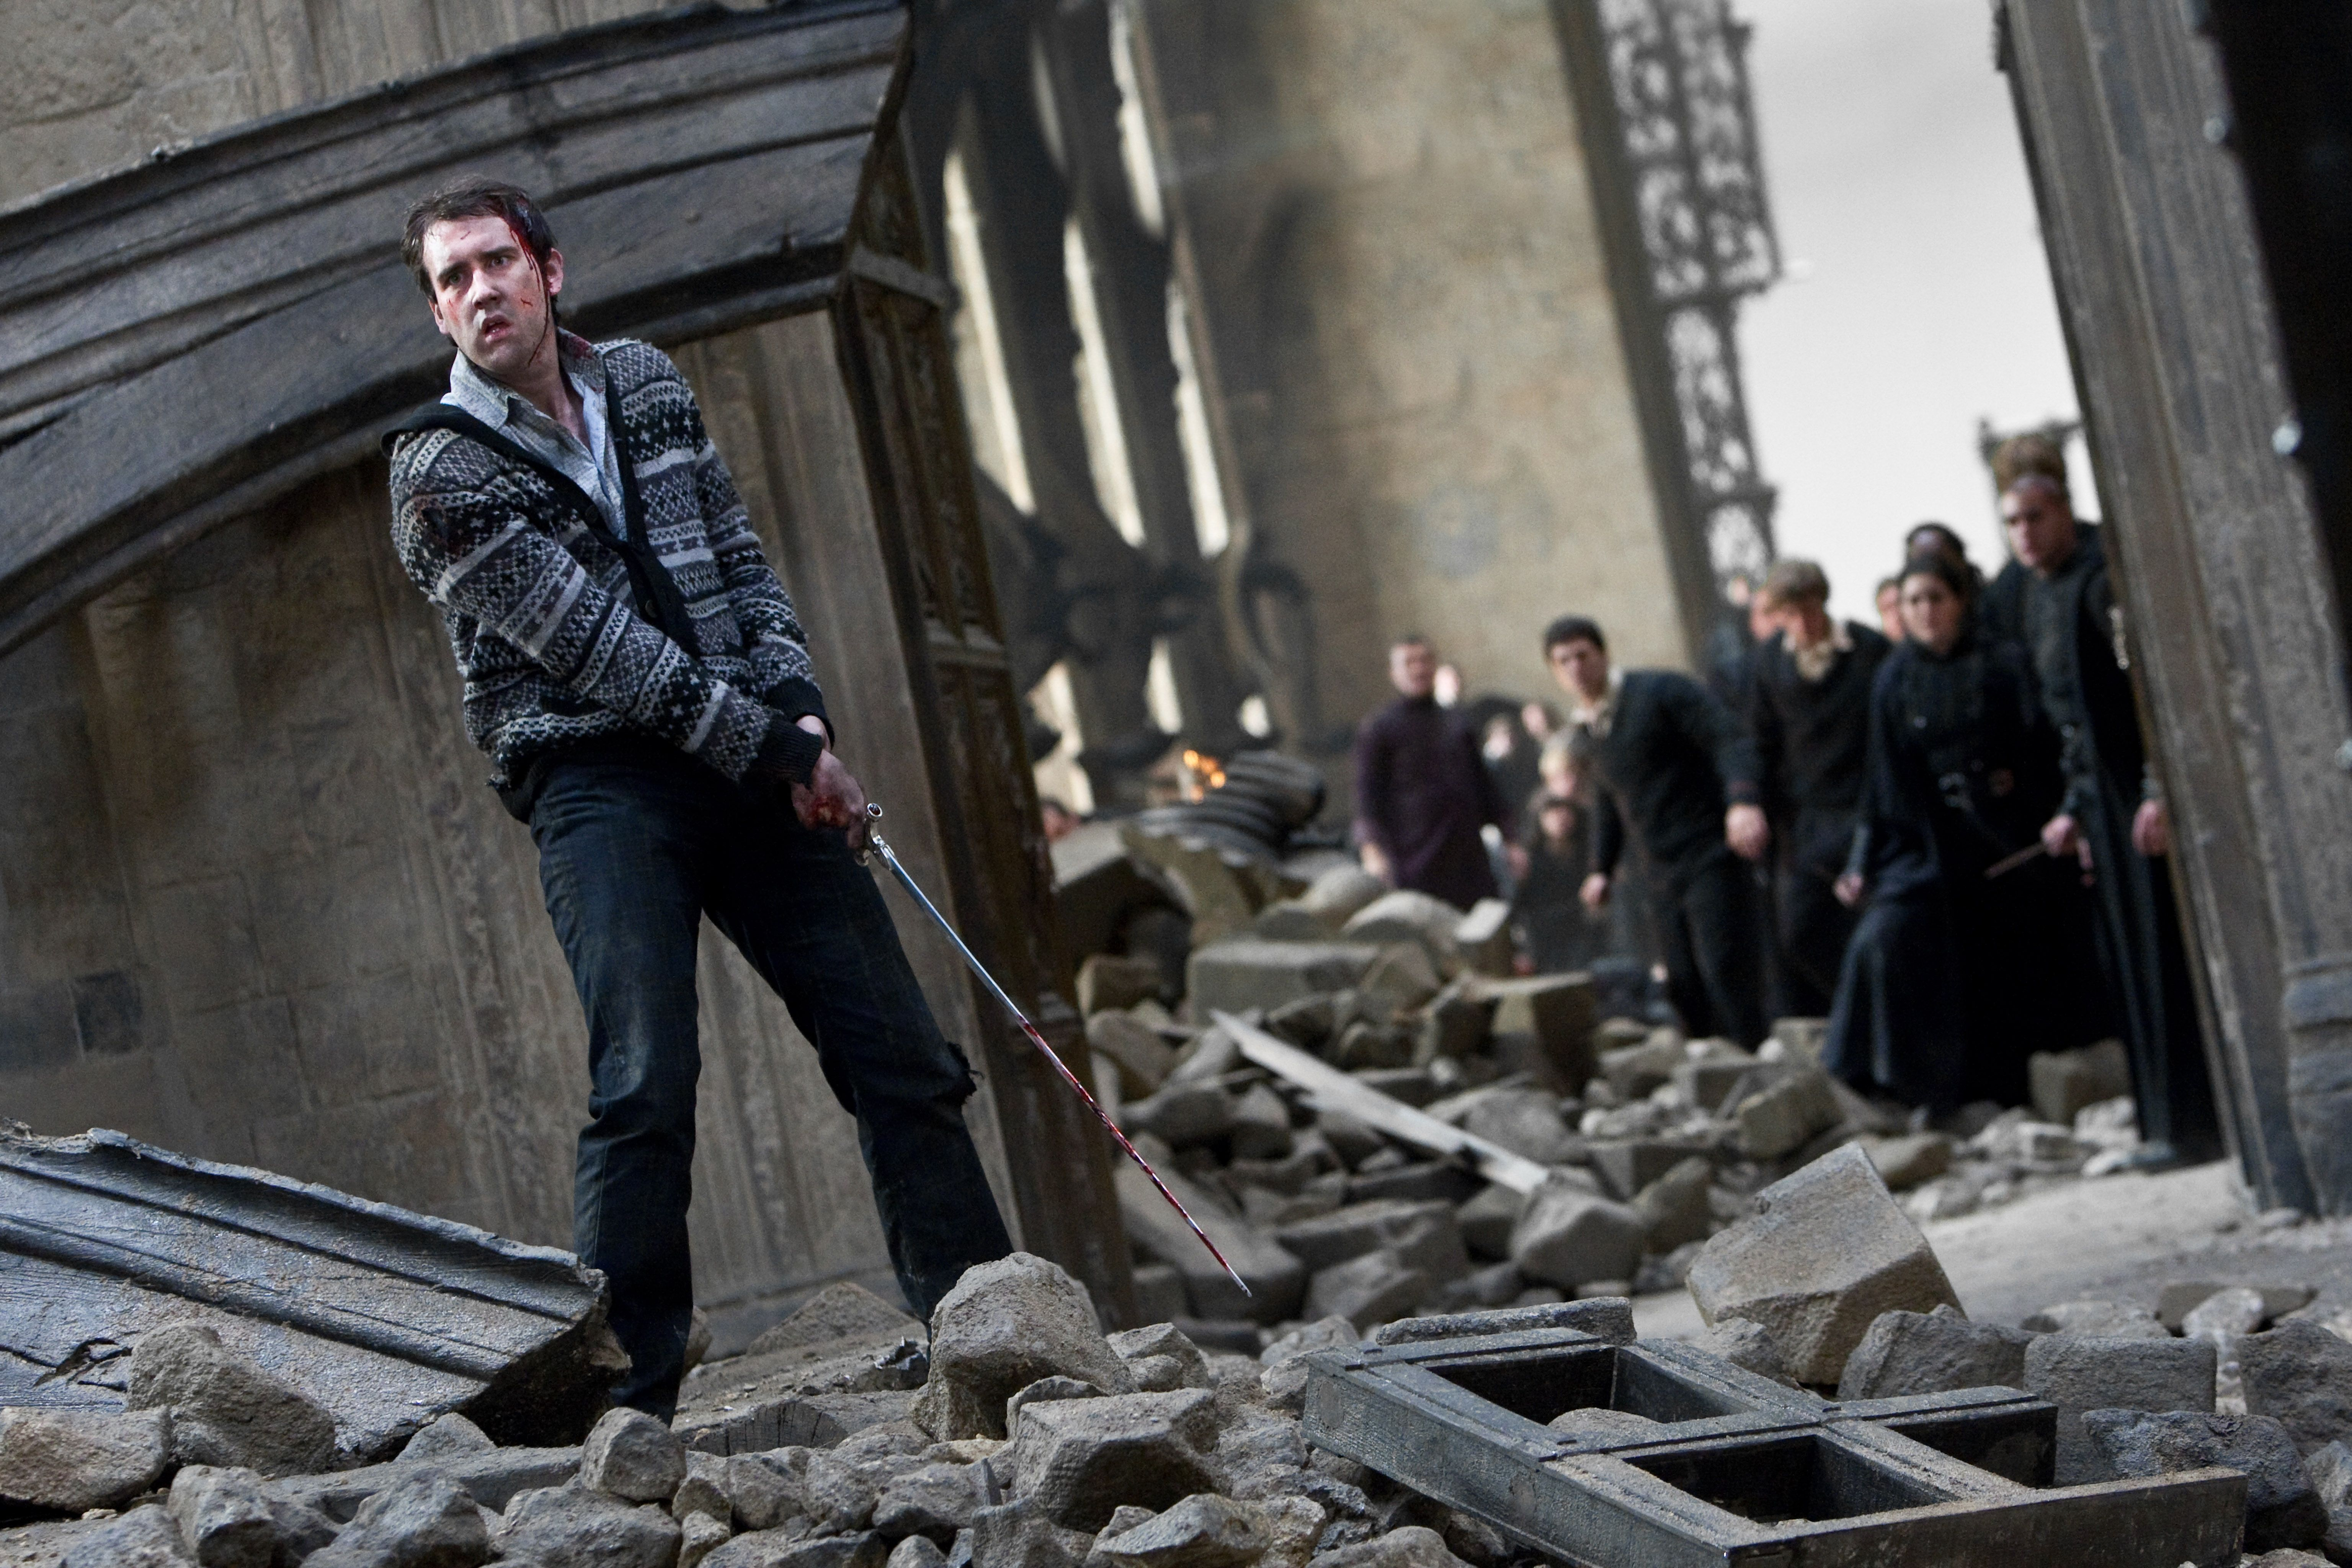 Watch Harry Potter and the Deathly Hallows Part 2